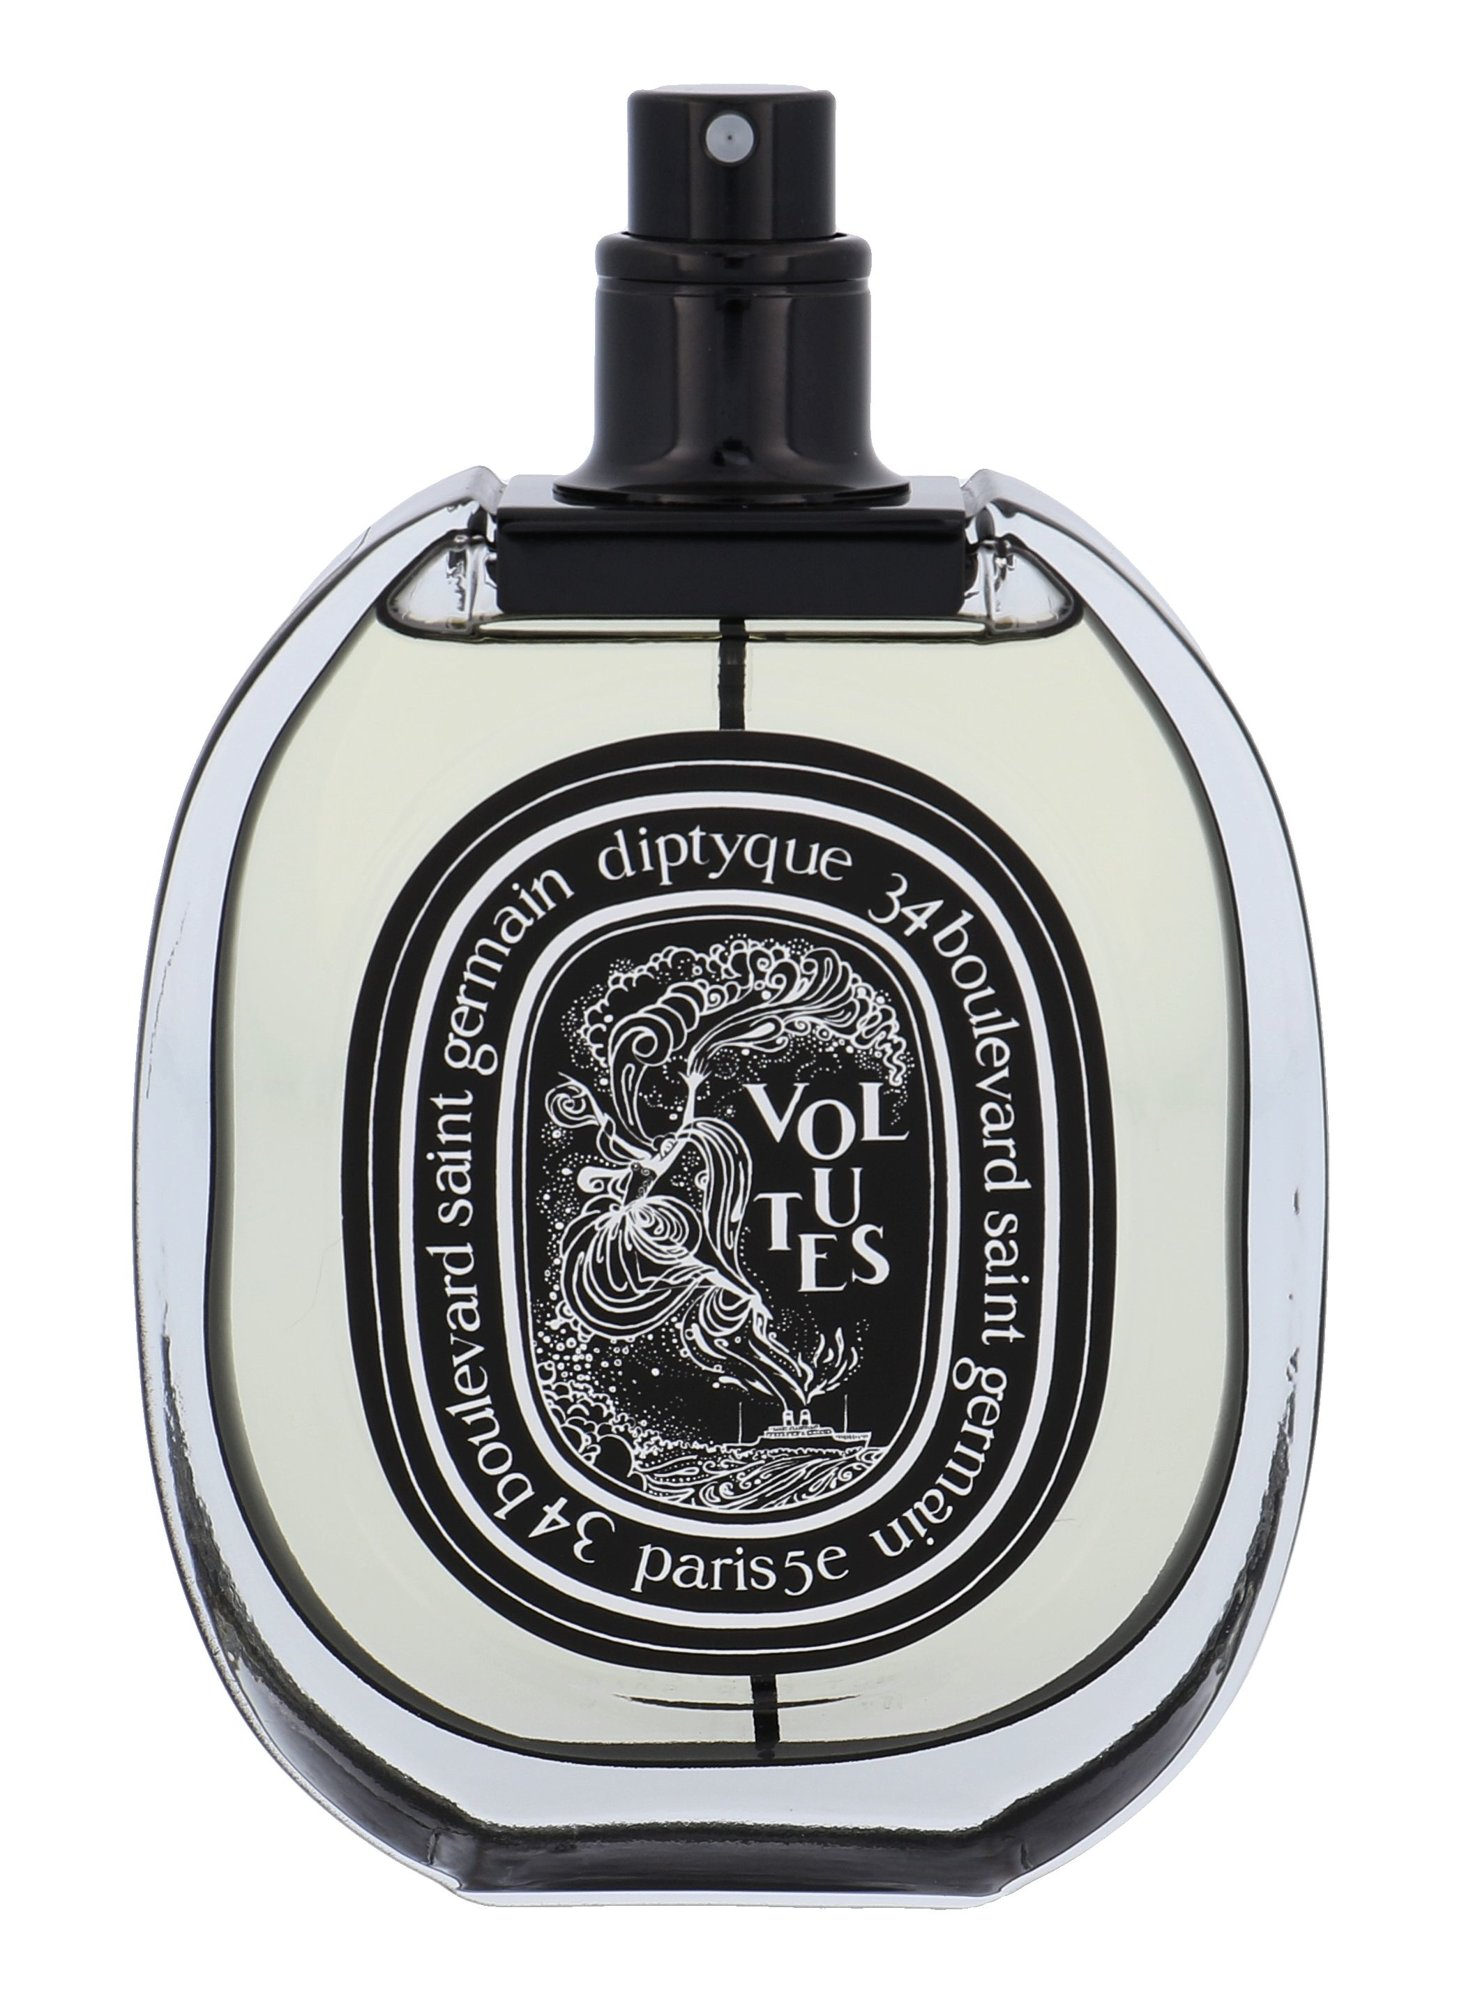 Diptyque Volutes EDT 100ml